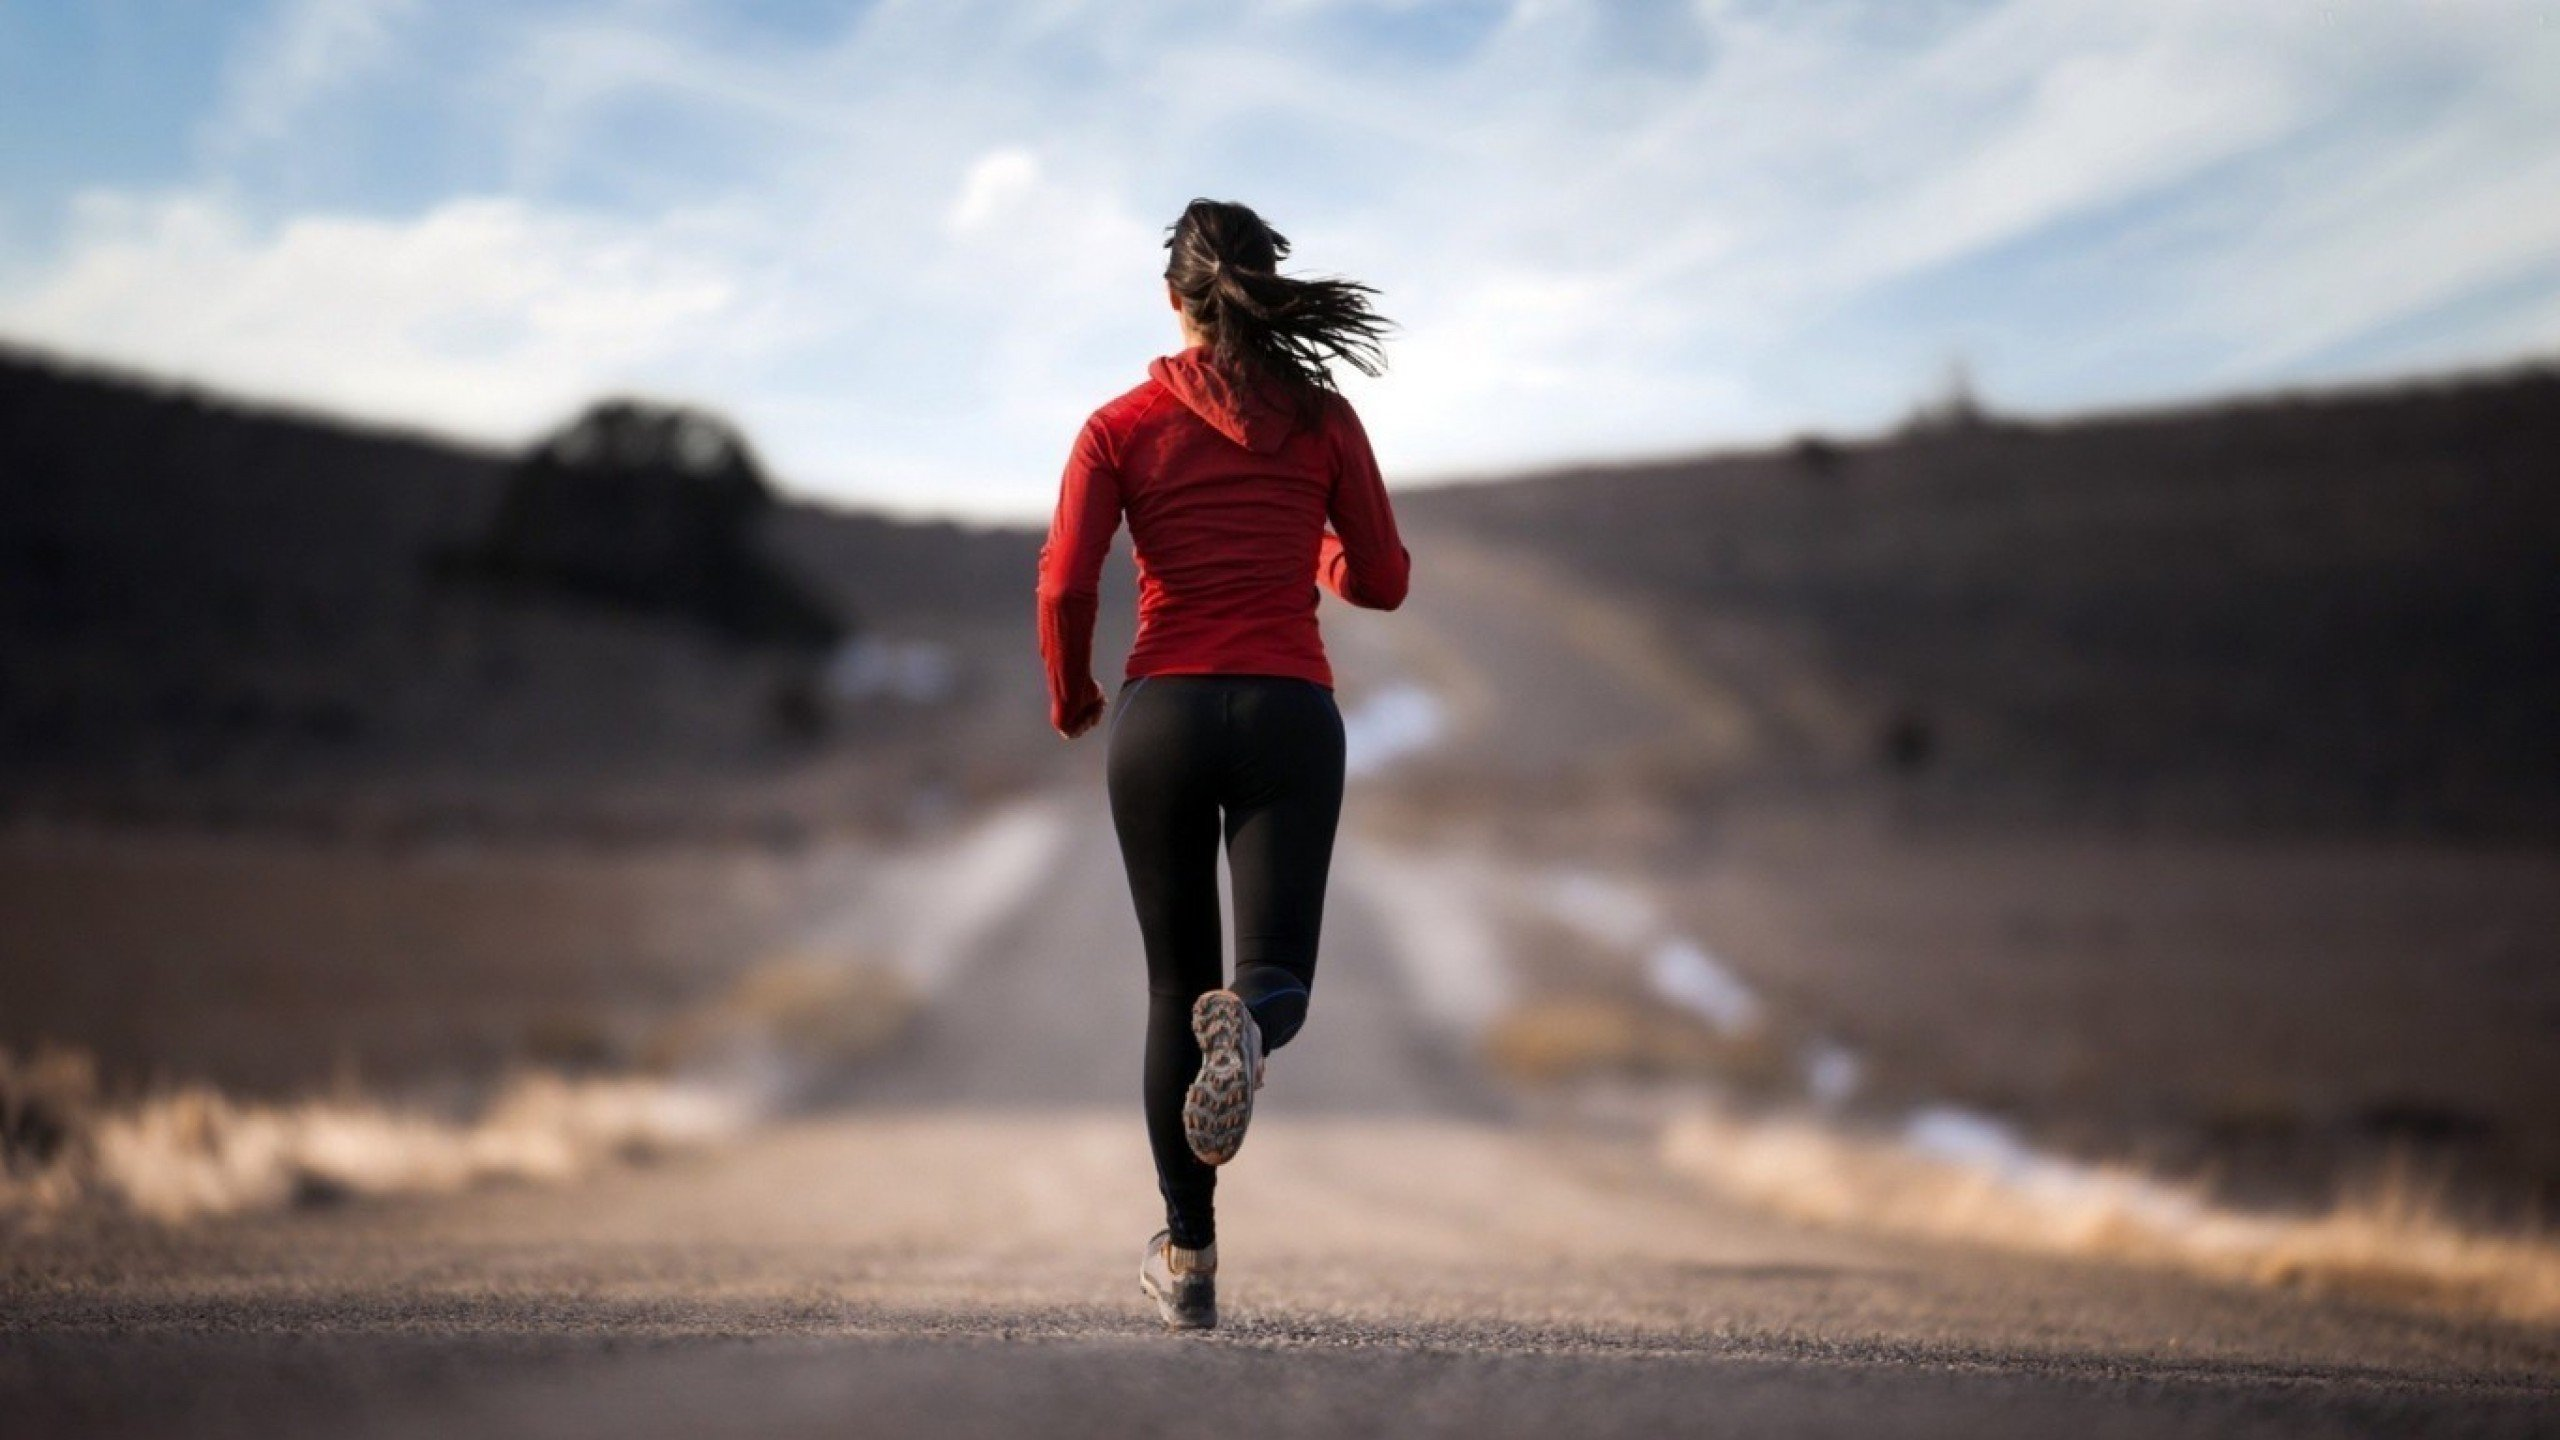 girl jogging full hd wallpaper download jogging photos free   A 2560x1440